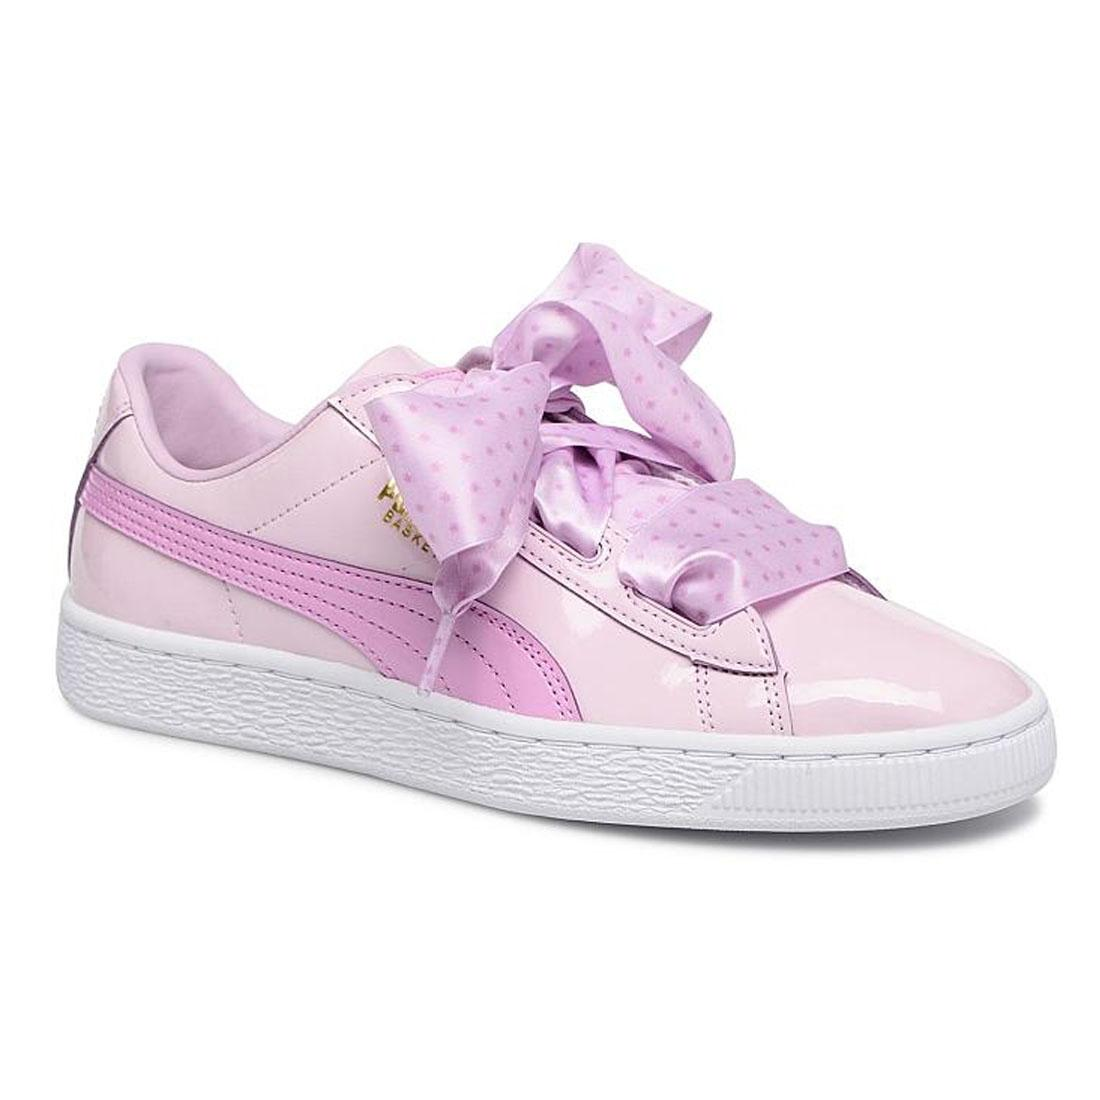 huge selection of 033a7 140a6 Details about PUMA Basket Heart Stars Patent Bow Childrens Trainers Kids  Pink Girls Shoes